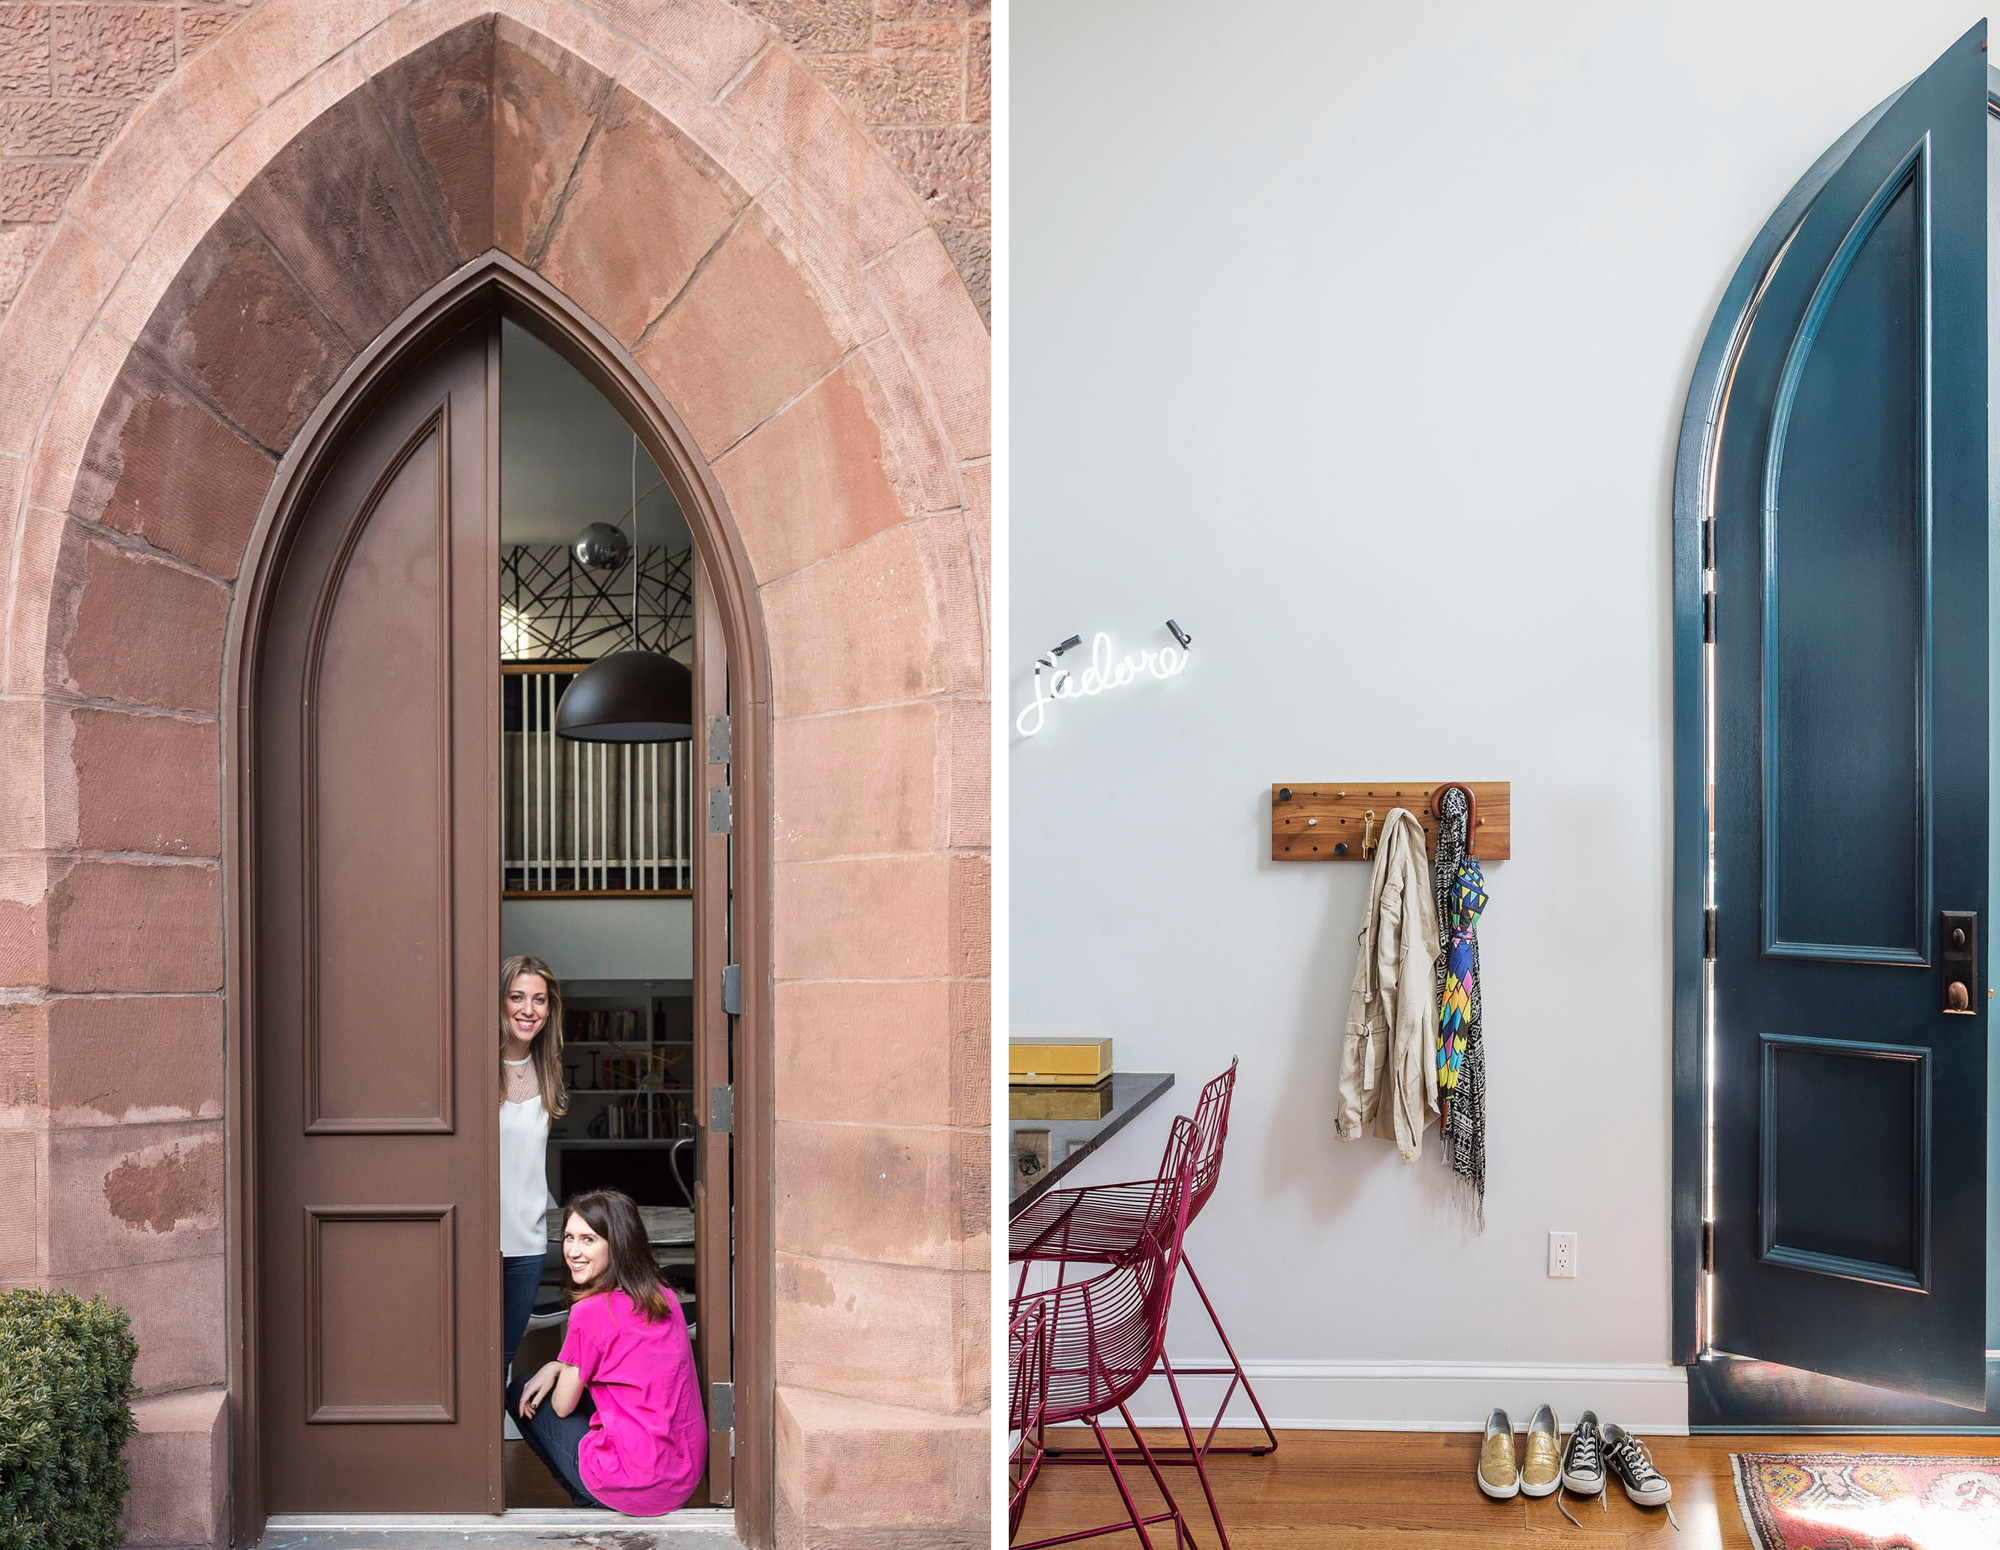 Lindsay Boswell and Ali Leven, founders of the Brooklyn-based interior design firm LABLstudio. Stately doors give way to a welcoming entry area. Photos © Matthew Williams.